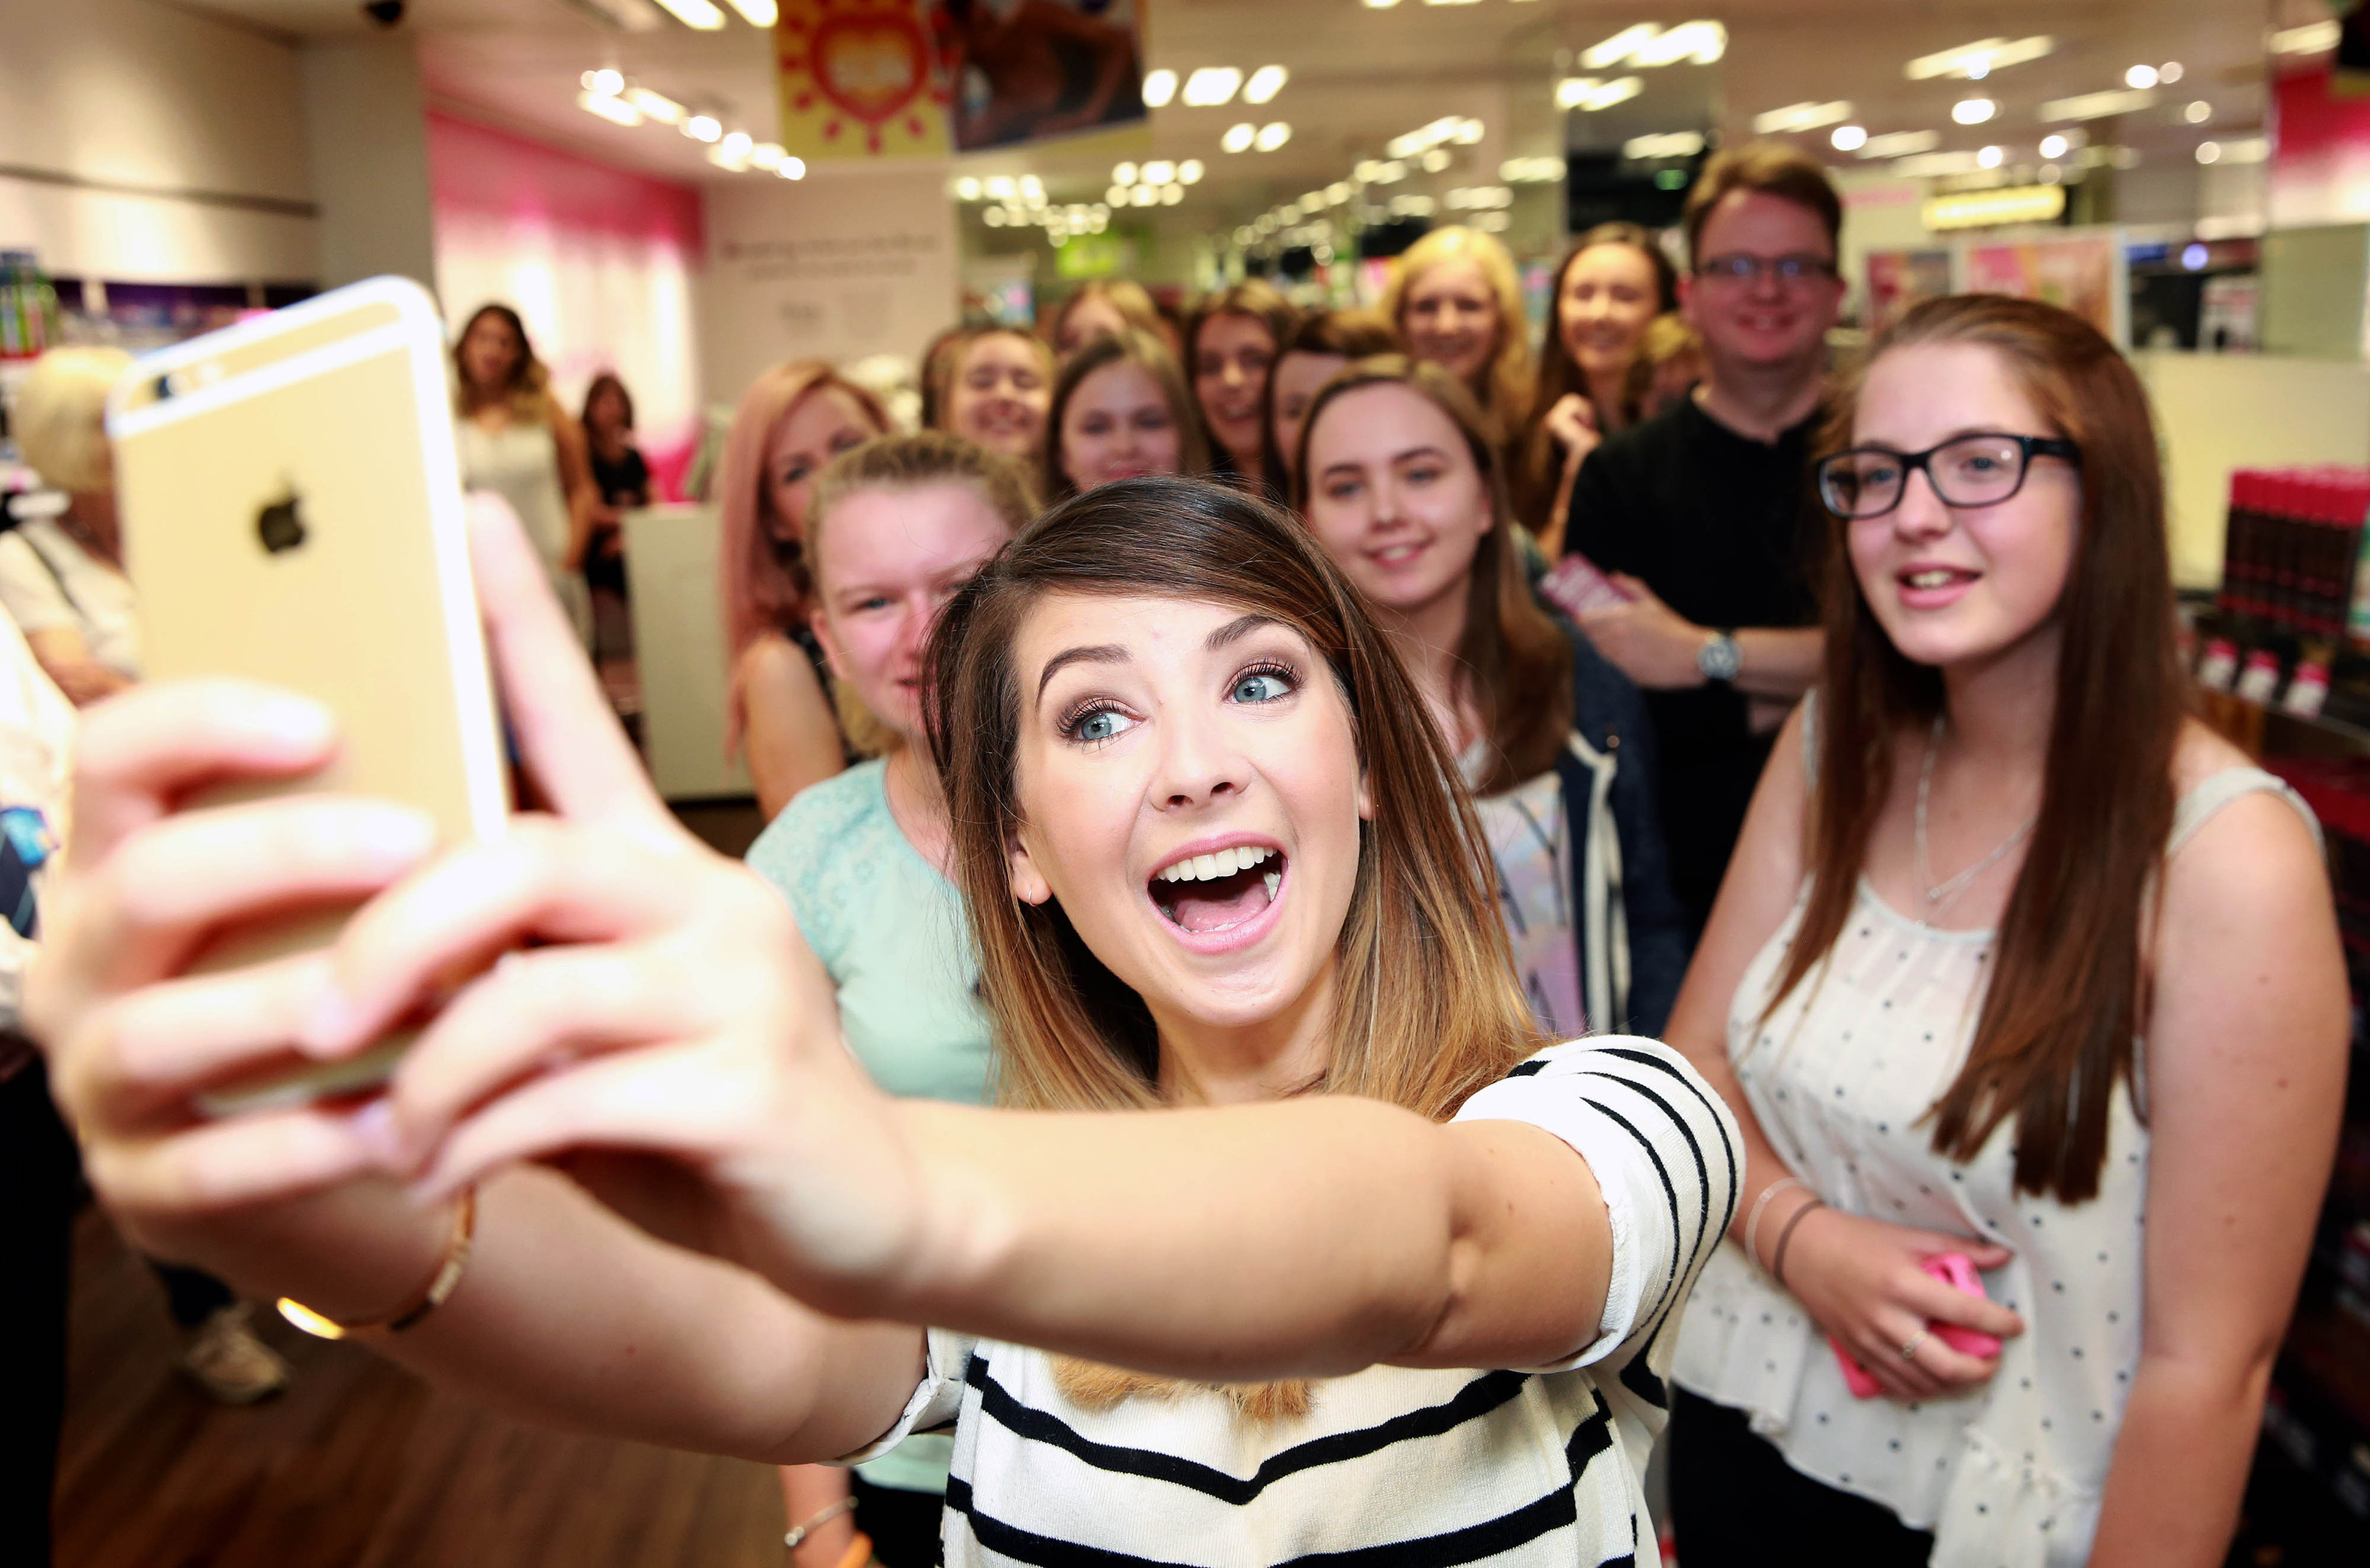 YouTube vlogger Zoella, real name Zoe Sugg, meets fans (PA Archive)